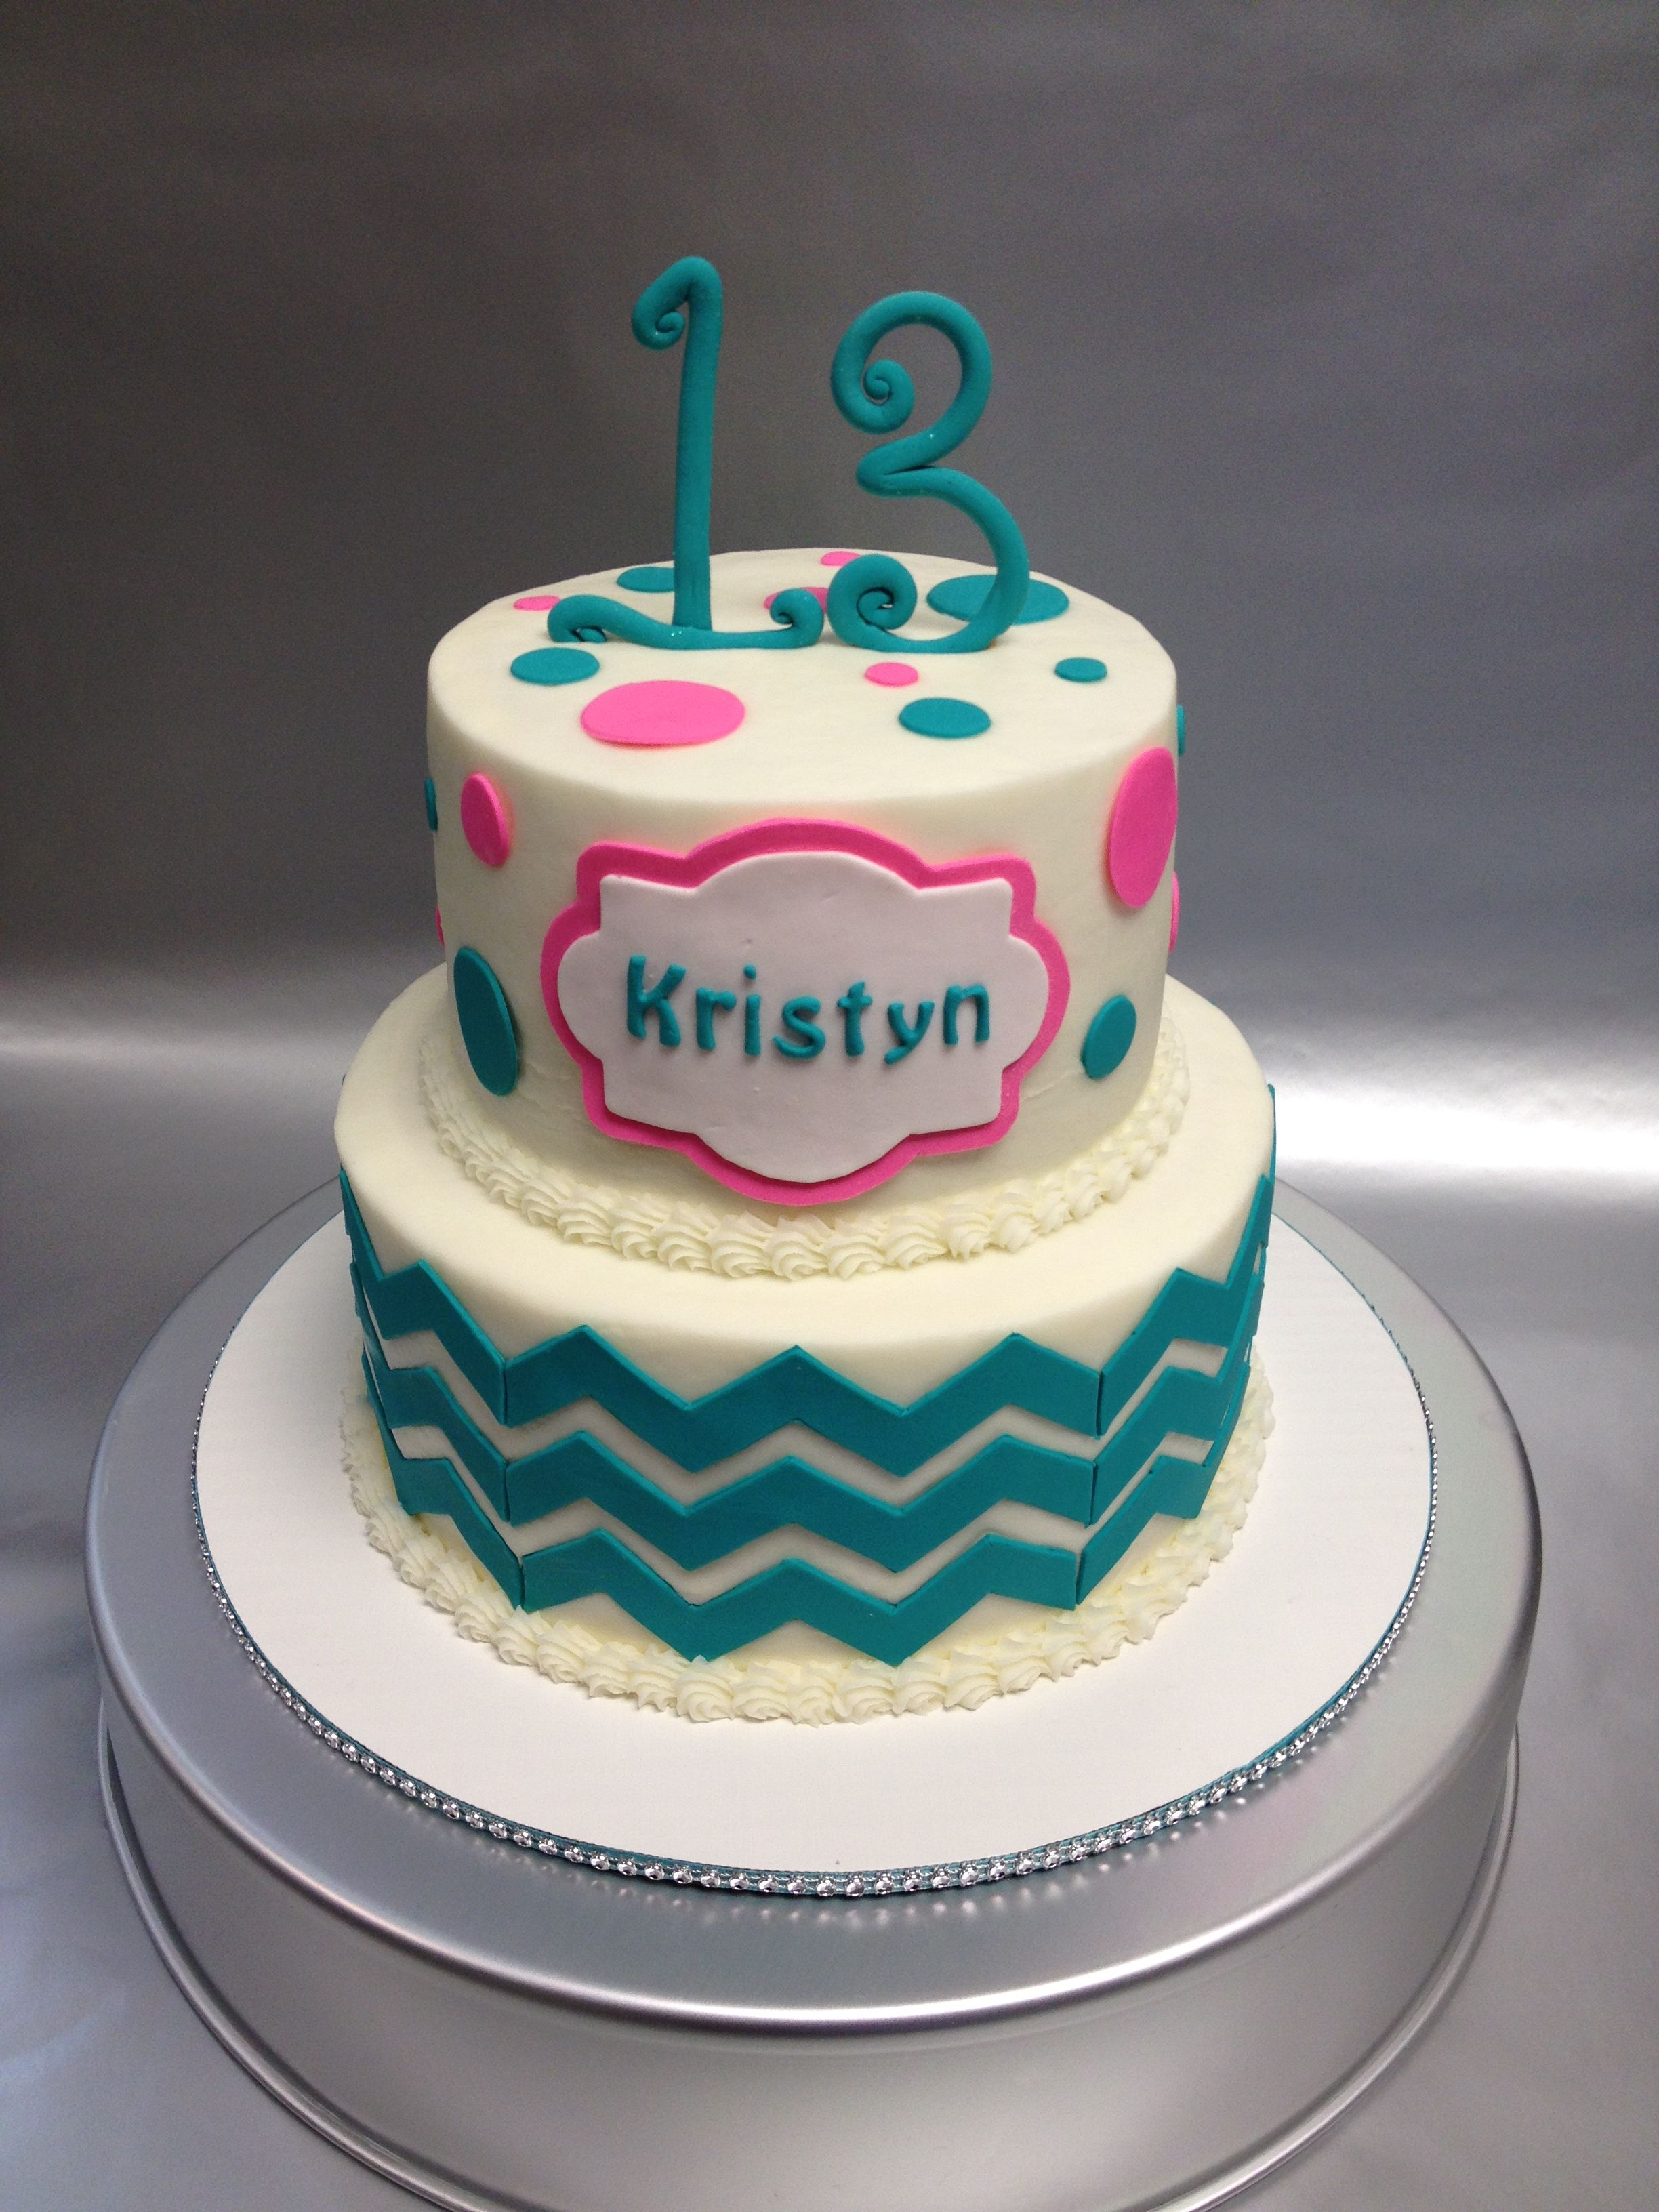 A Pretty 2 Tiered Gluten Free Birthday Cake Design For 13 Year Old